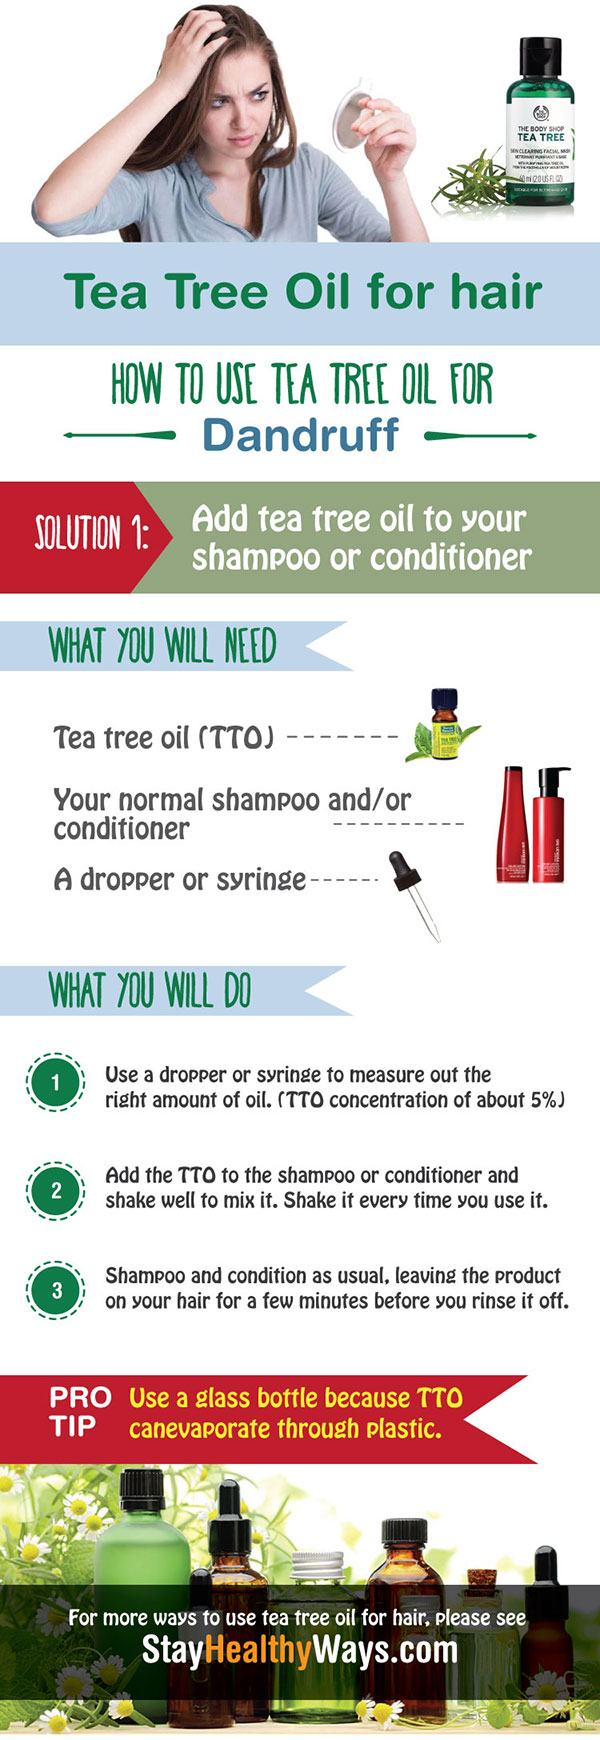 tea tree oil for hair infographic